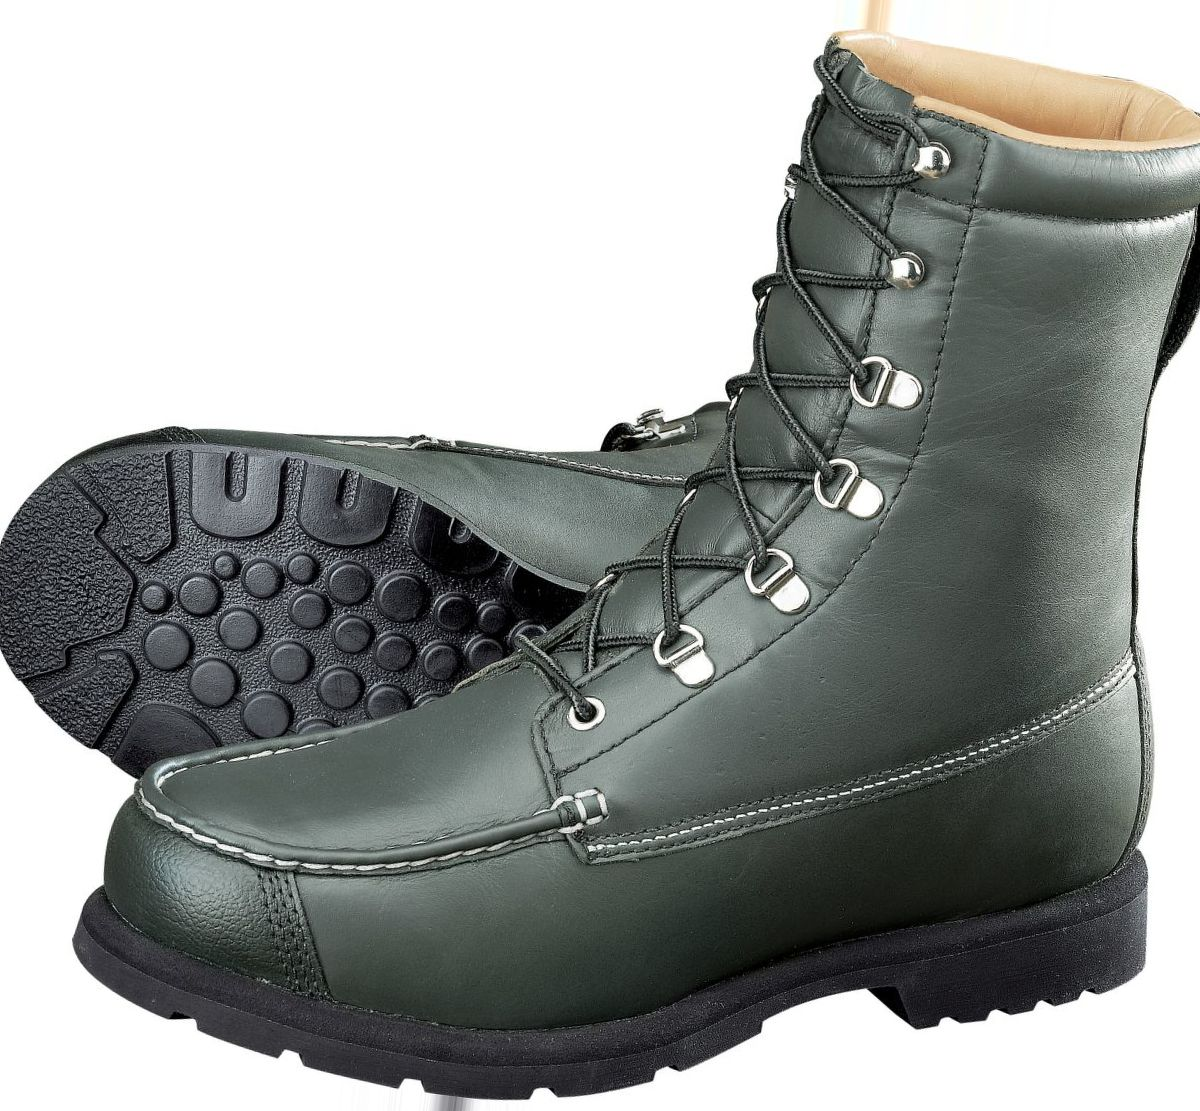 Cabela's Men's Uninsulated Kangaroo Featherlight™ Boots